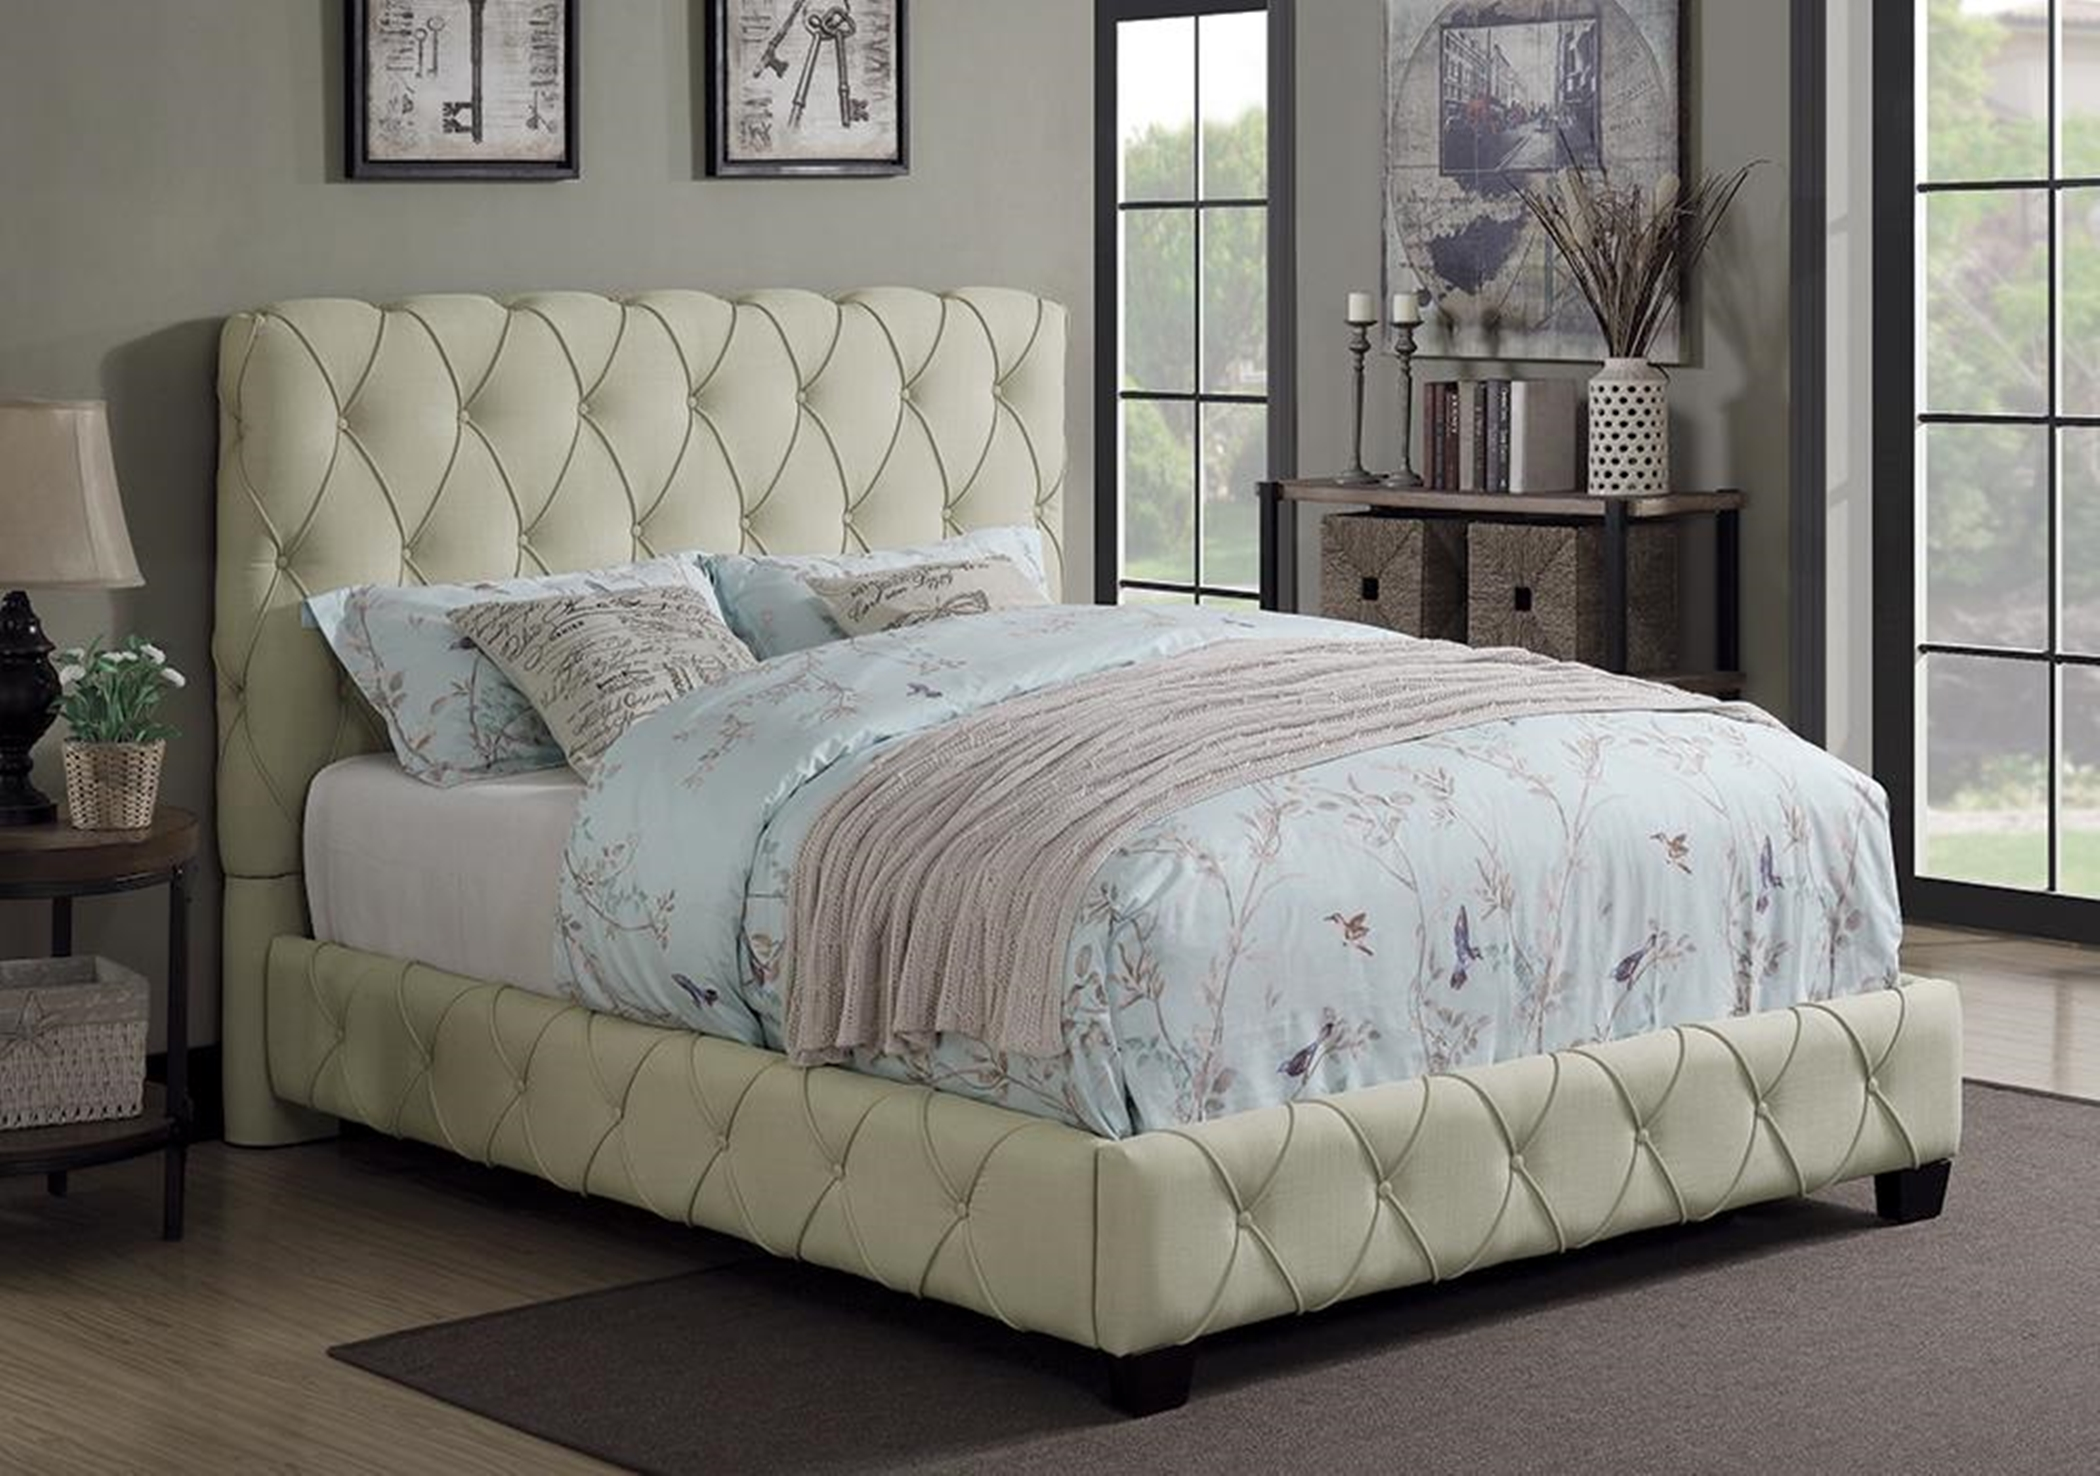 Elsinore Beige Upholstered Full Bed